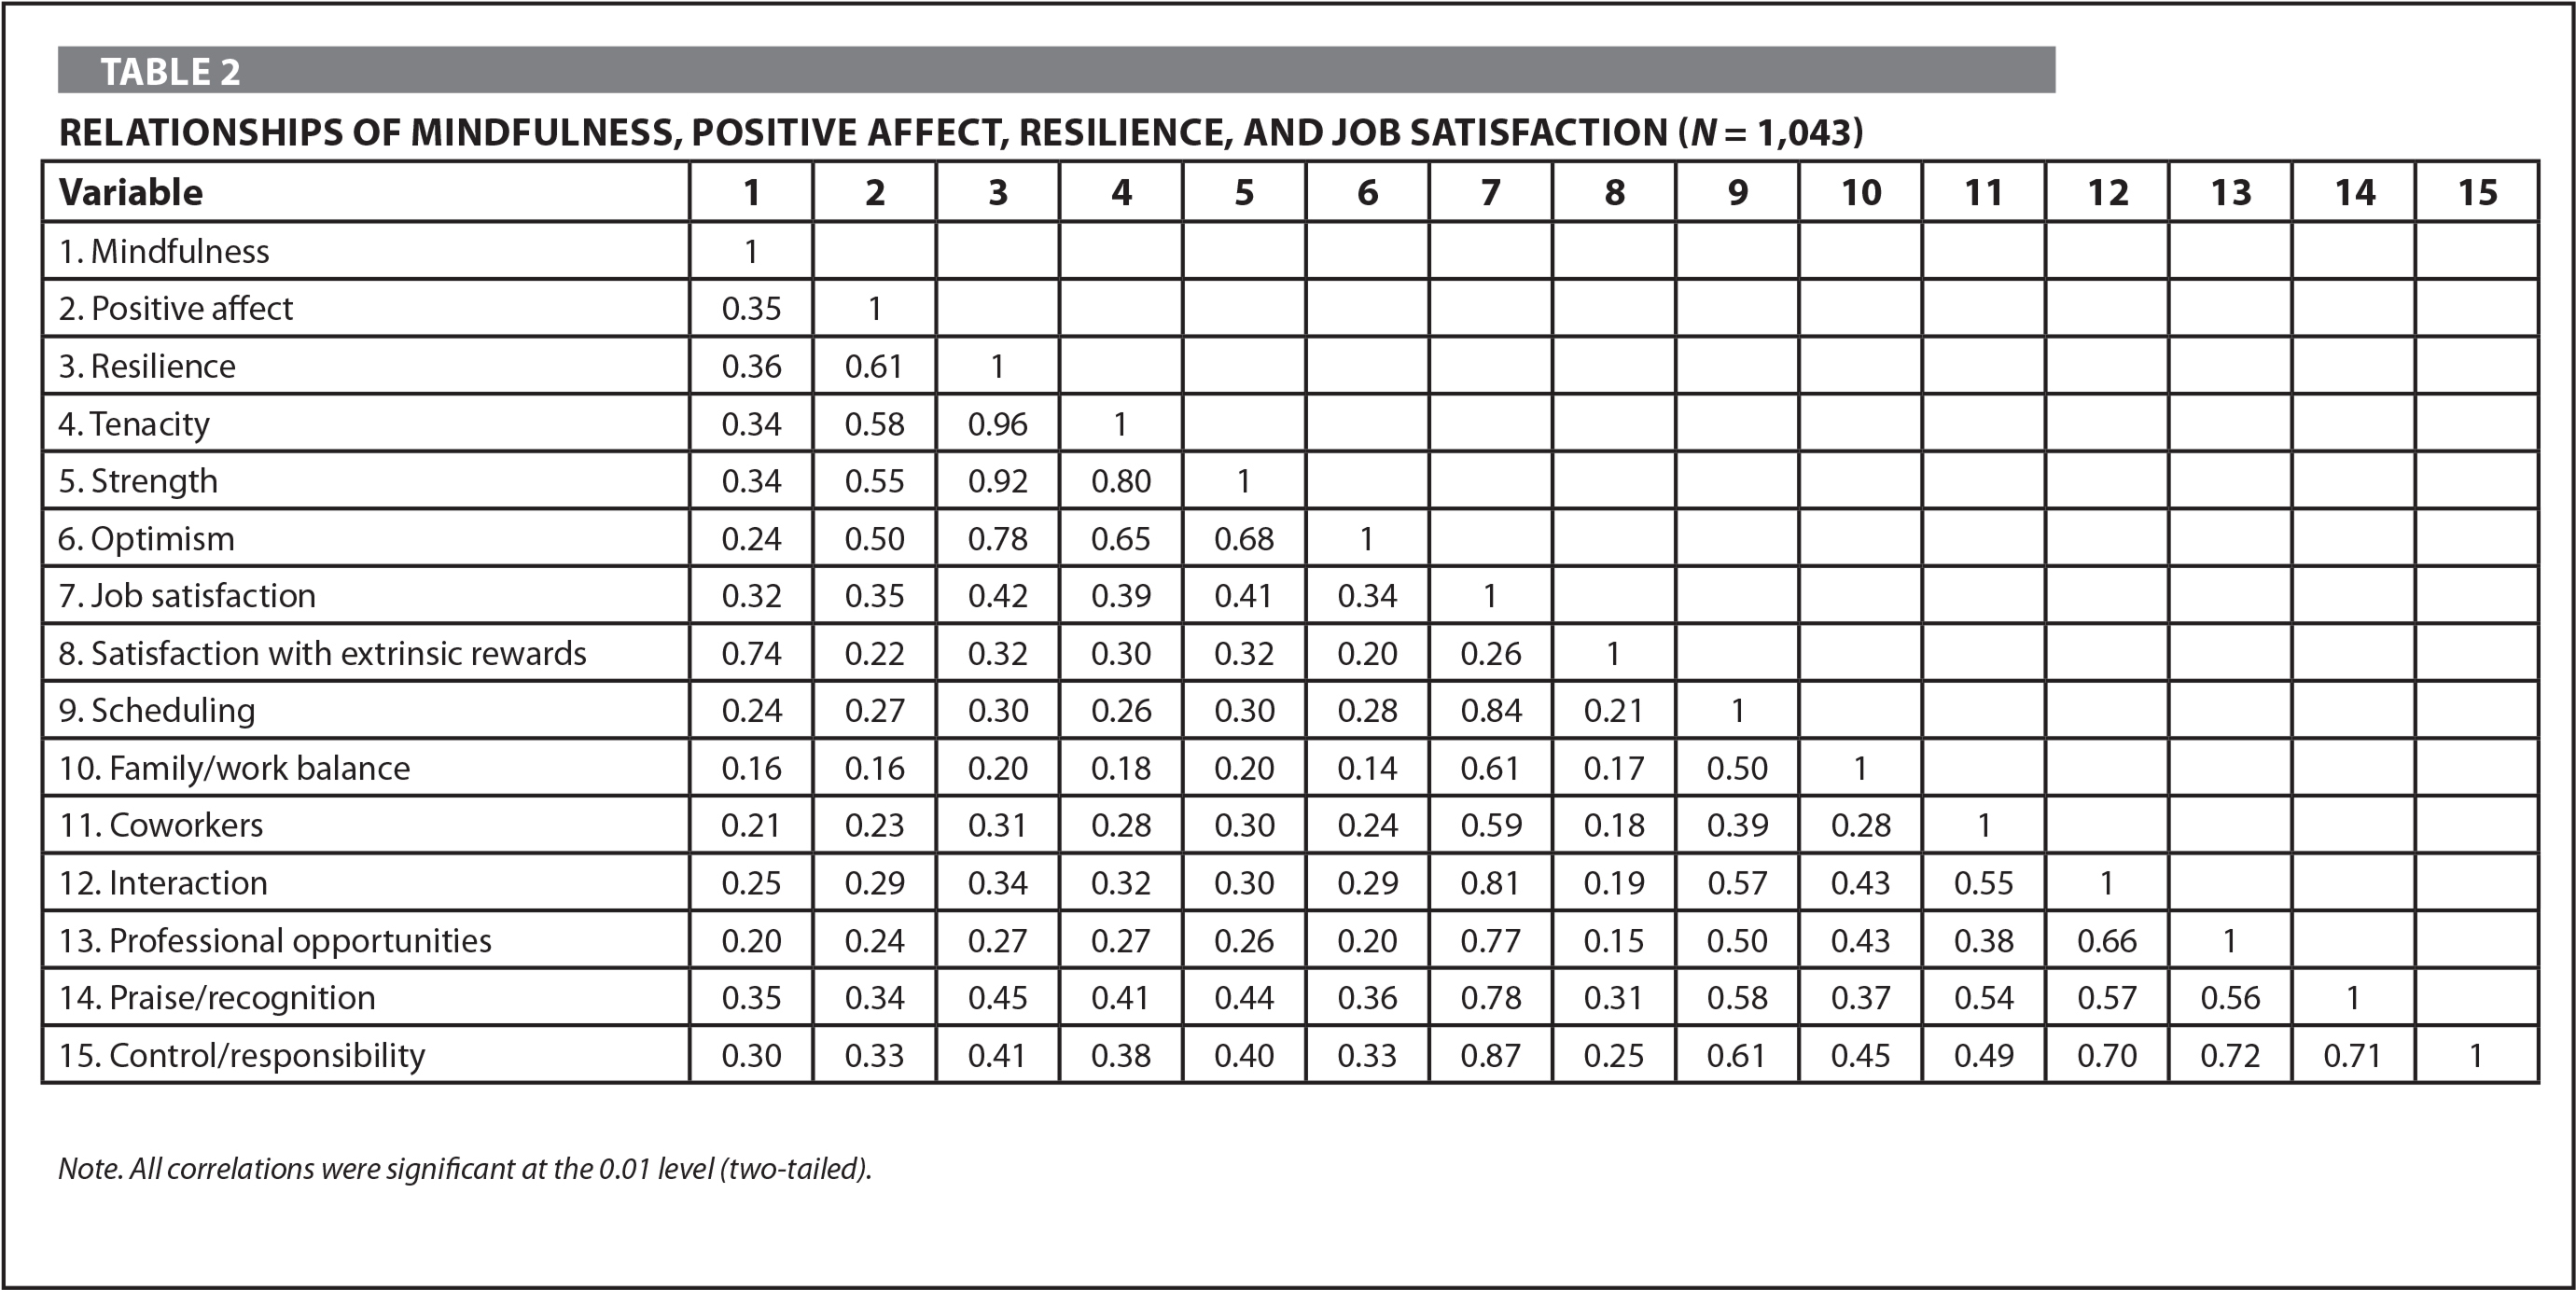 Relationships of Mindfulness, Positive Affect, Resilience, and Job Satisfaction (N = 1,043)